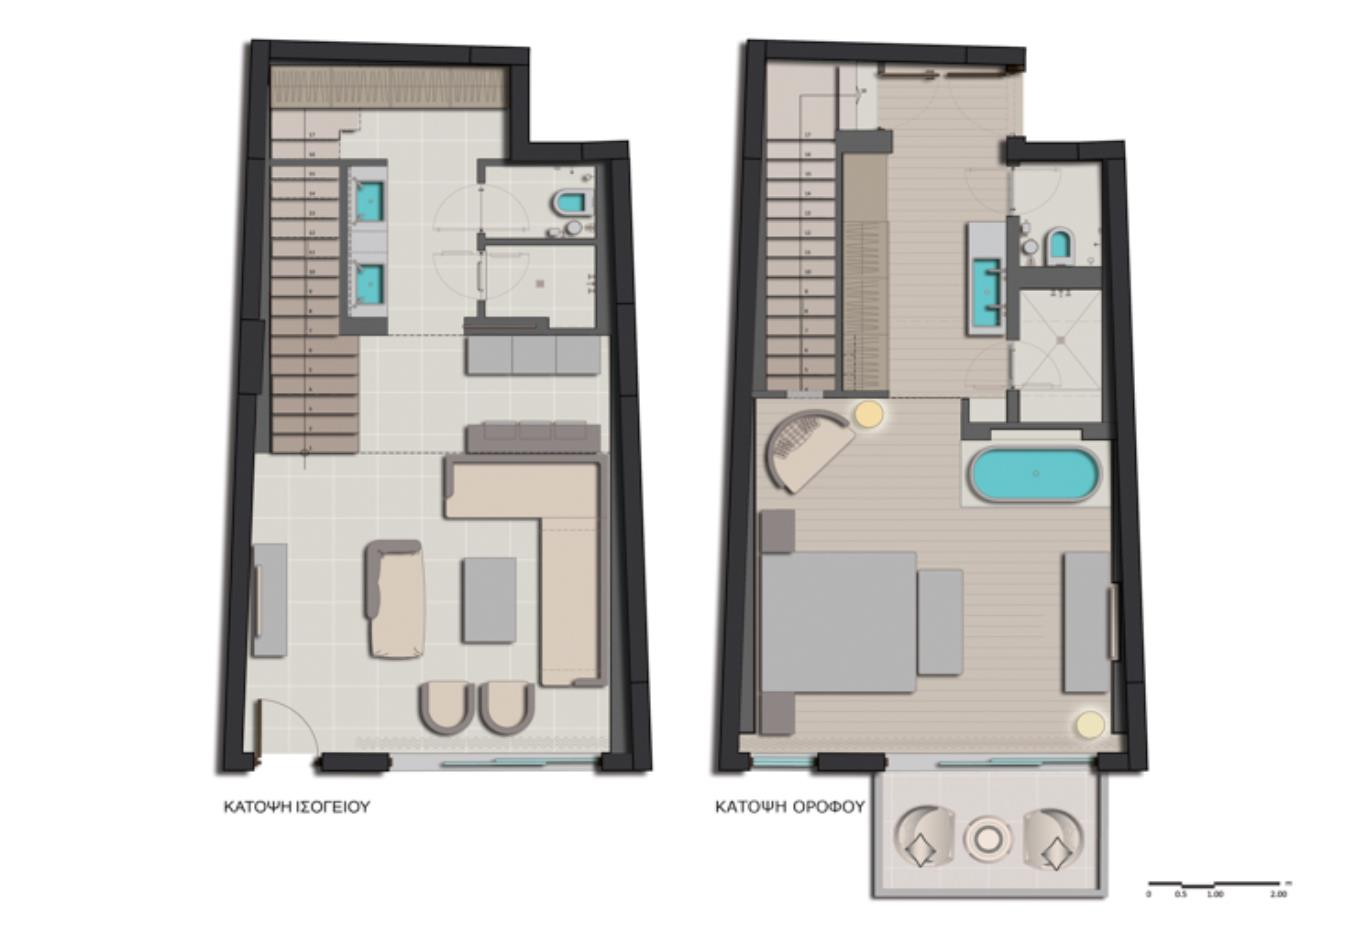 Duplex Suite floorplan